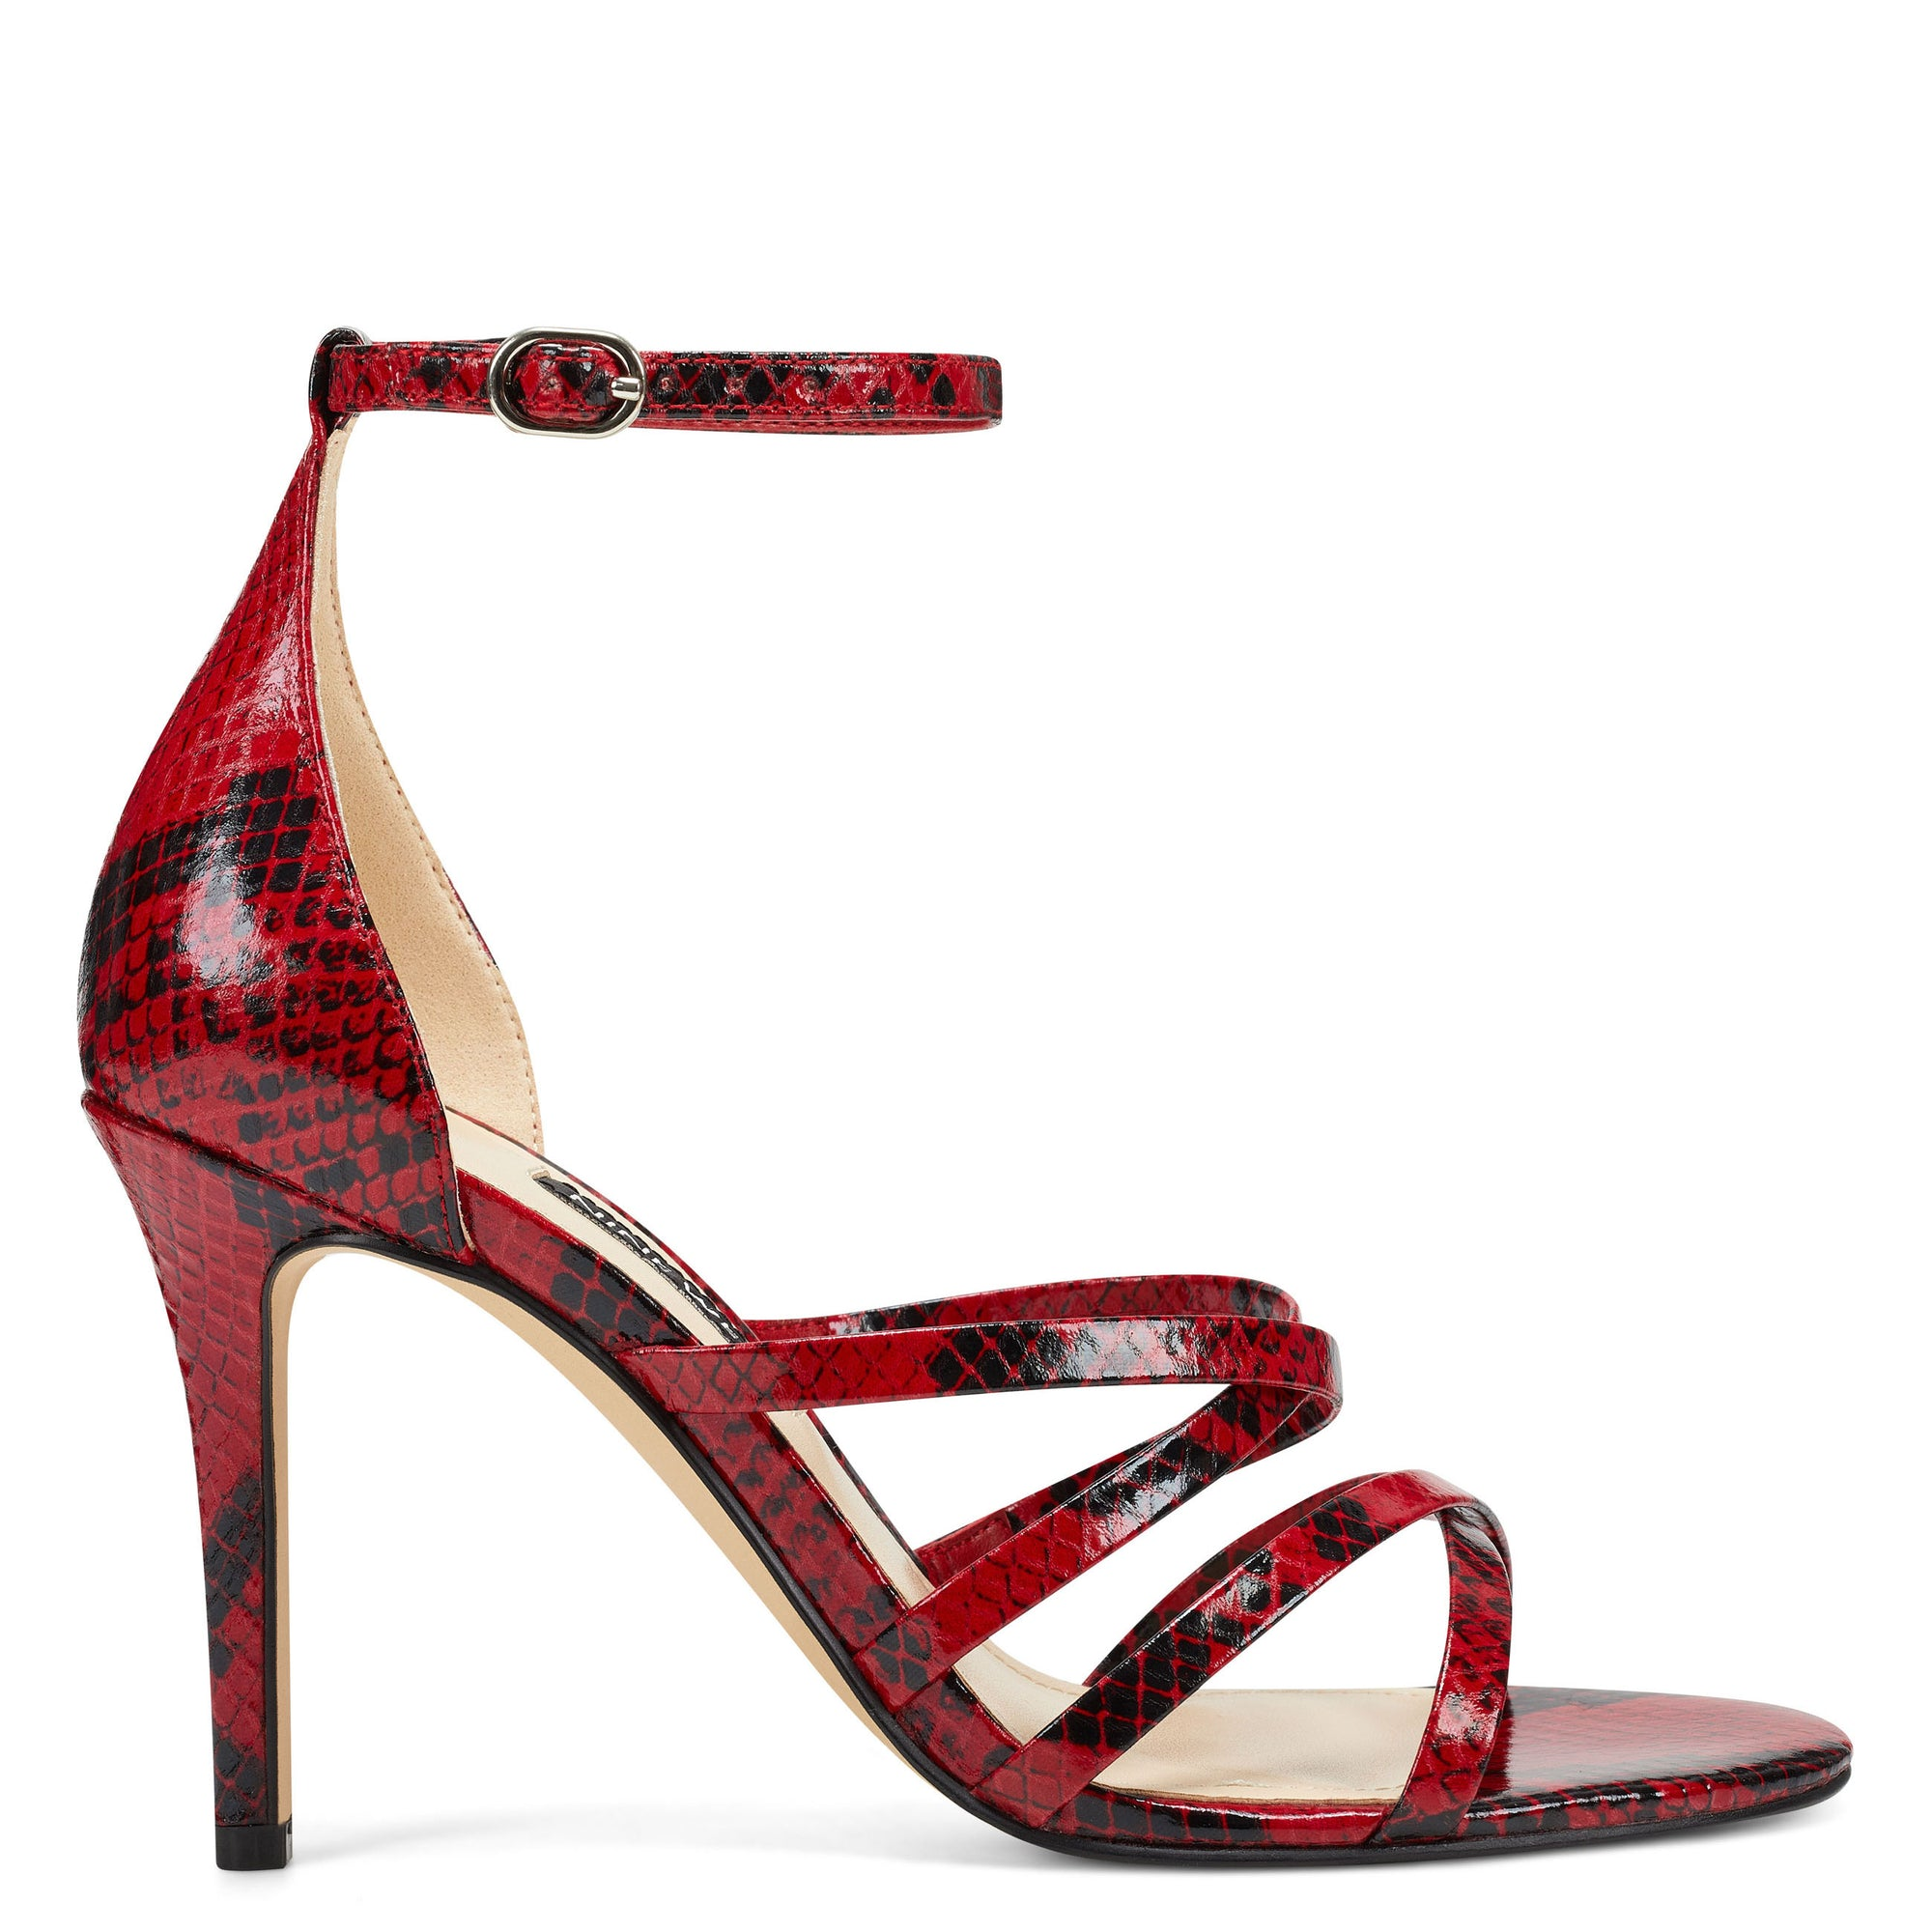 malina-heel-sandals-in-red-multi-snake-print